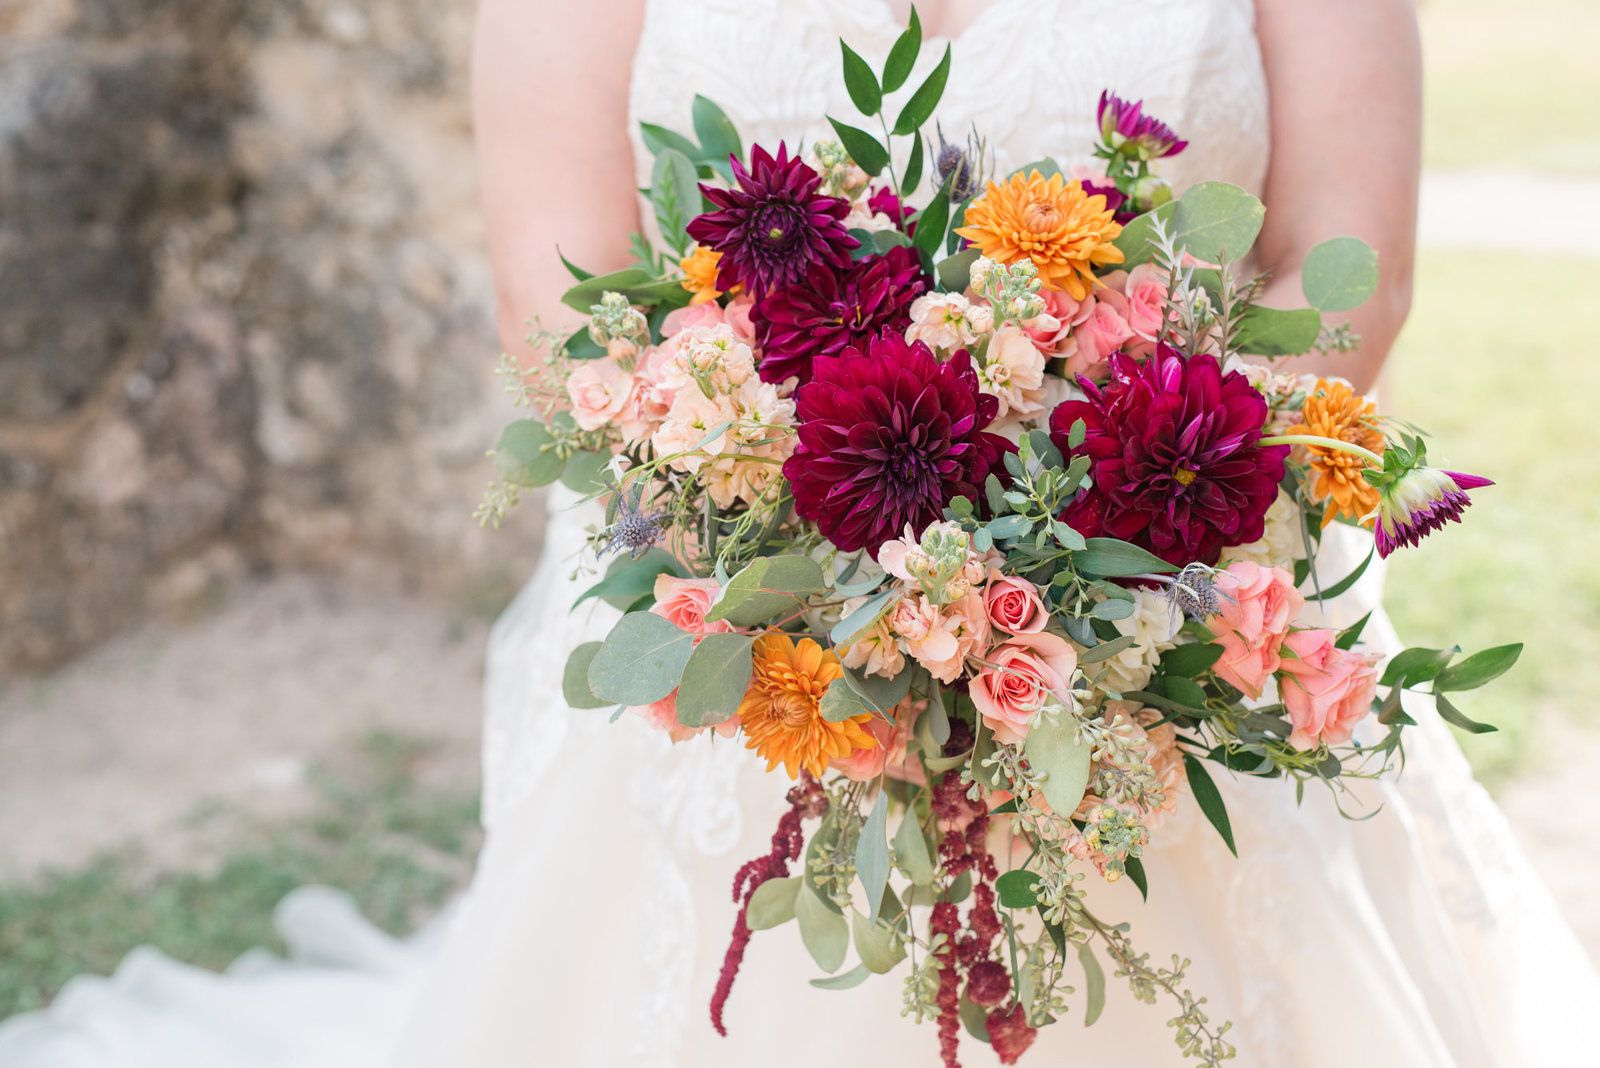 Fall Wedding Bouquet in jewel tones by Eden's Echo Florist in San Antonio